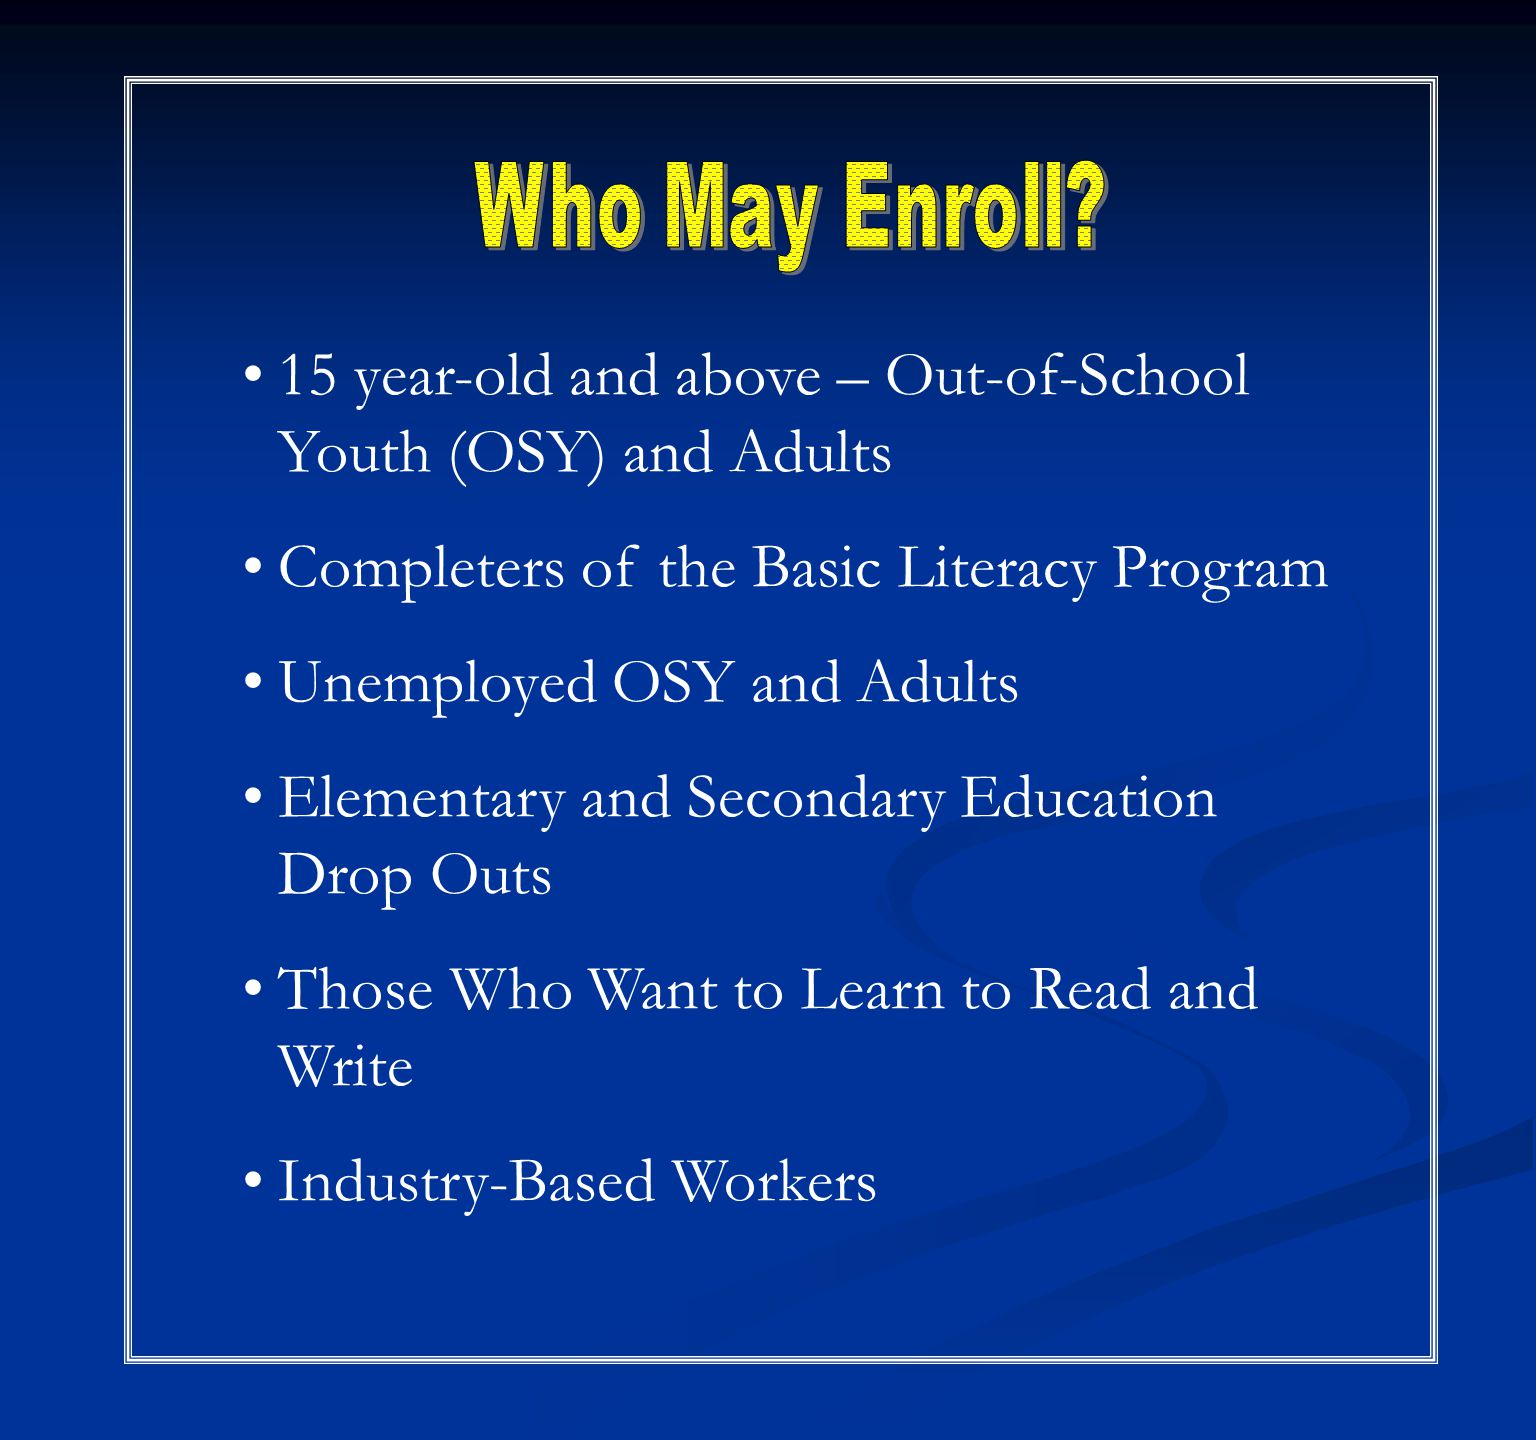 15 year-old and above – Out-of-School Youth (OSY) and Adults Completers of the Basic Literacy Program Unemployed OSY and Adults Elementary and Secondary Education Drop Outs Those Who Want to Learn to Read and Write Industry-Based Workers